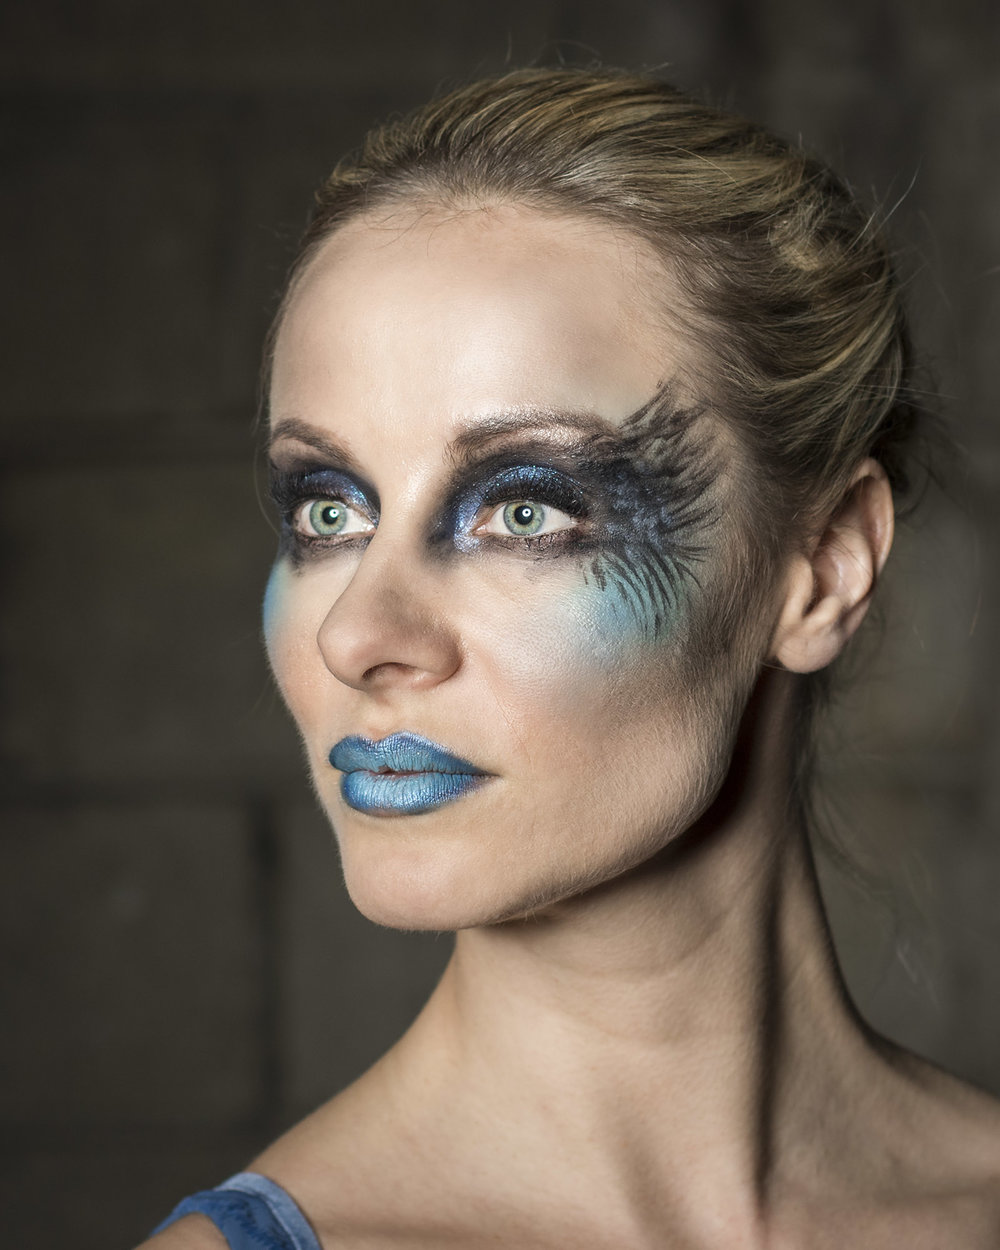 Creative makeup for the second look.